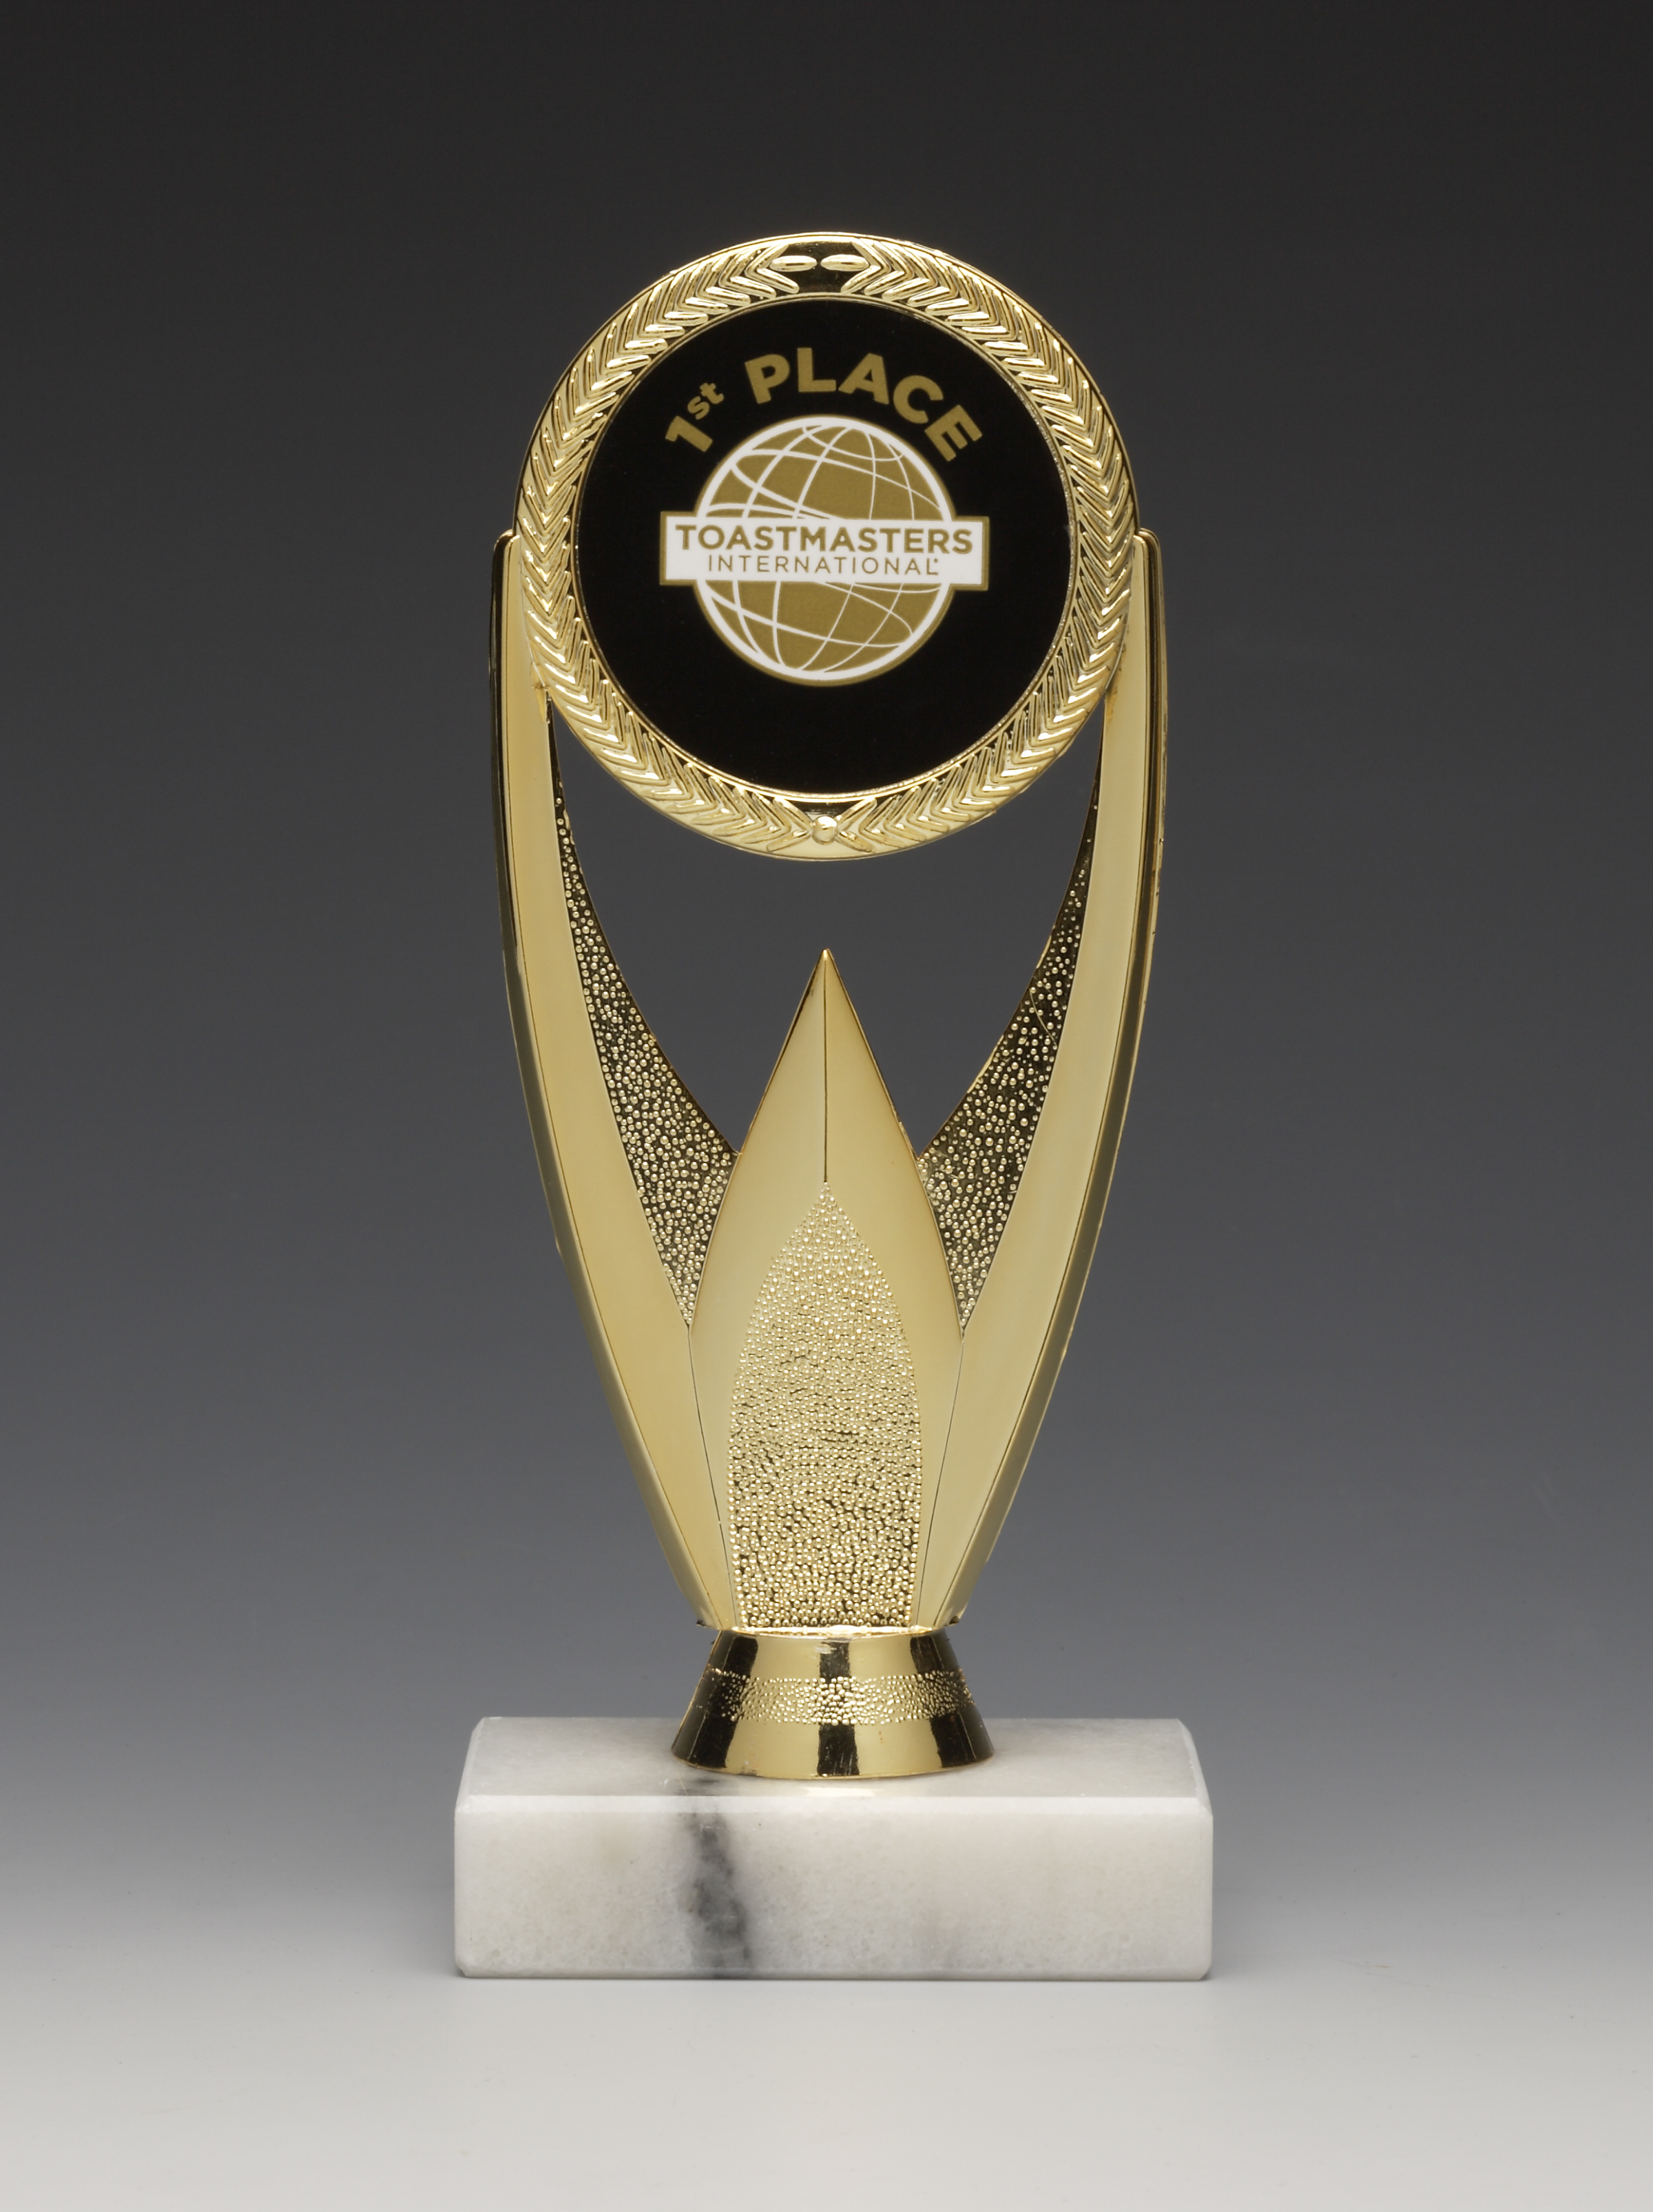 Oval Torch Award (1st Place)